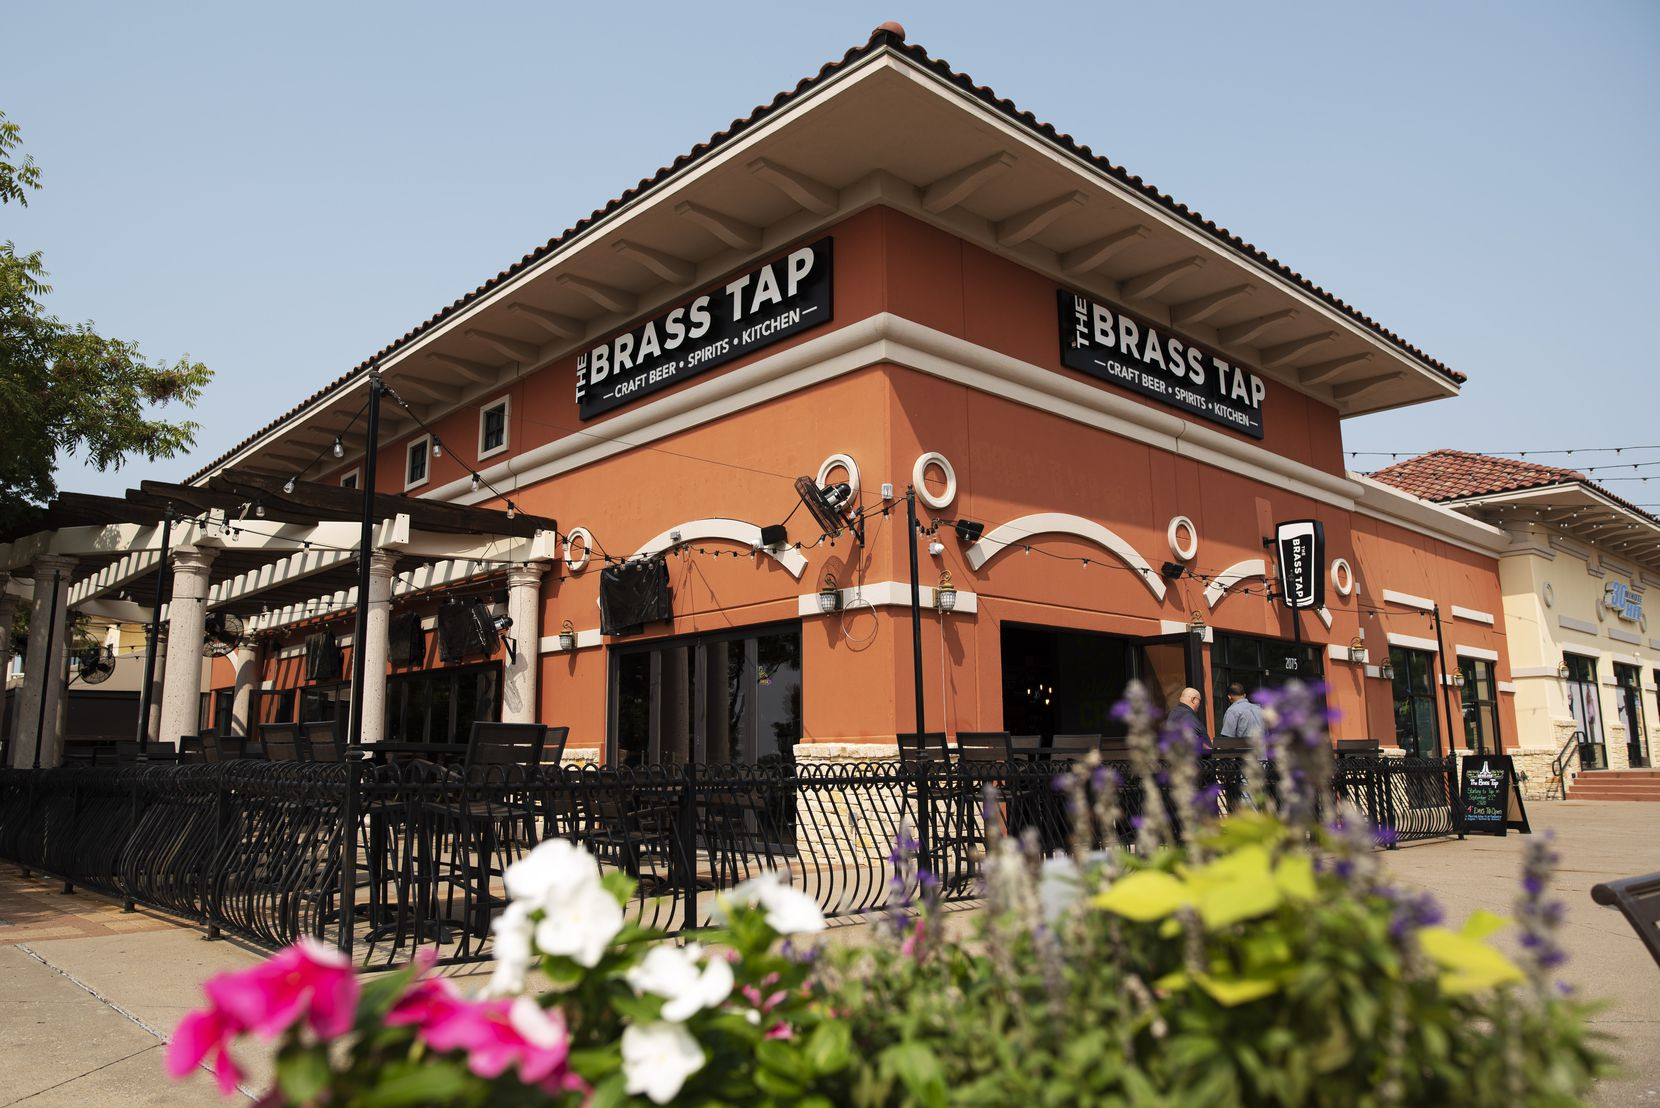 The Brass Tap in Rockwall, on Saturday, Sept. 19, 2020. The restaurant will open Monday Sept. 21st. Ben Torres/Special Contributor